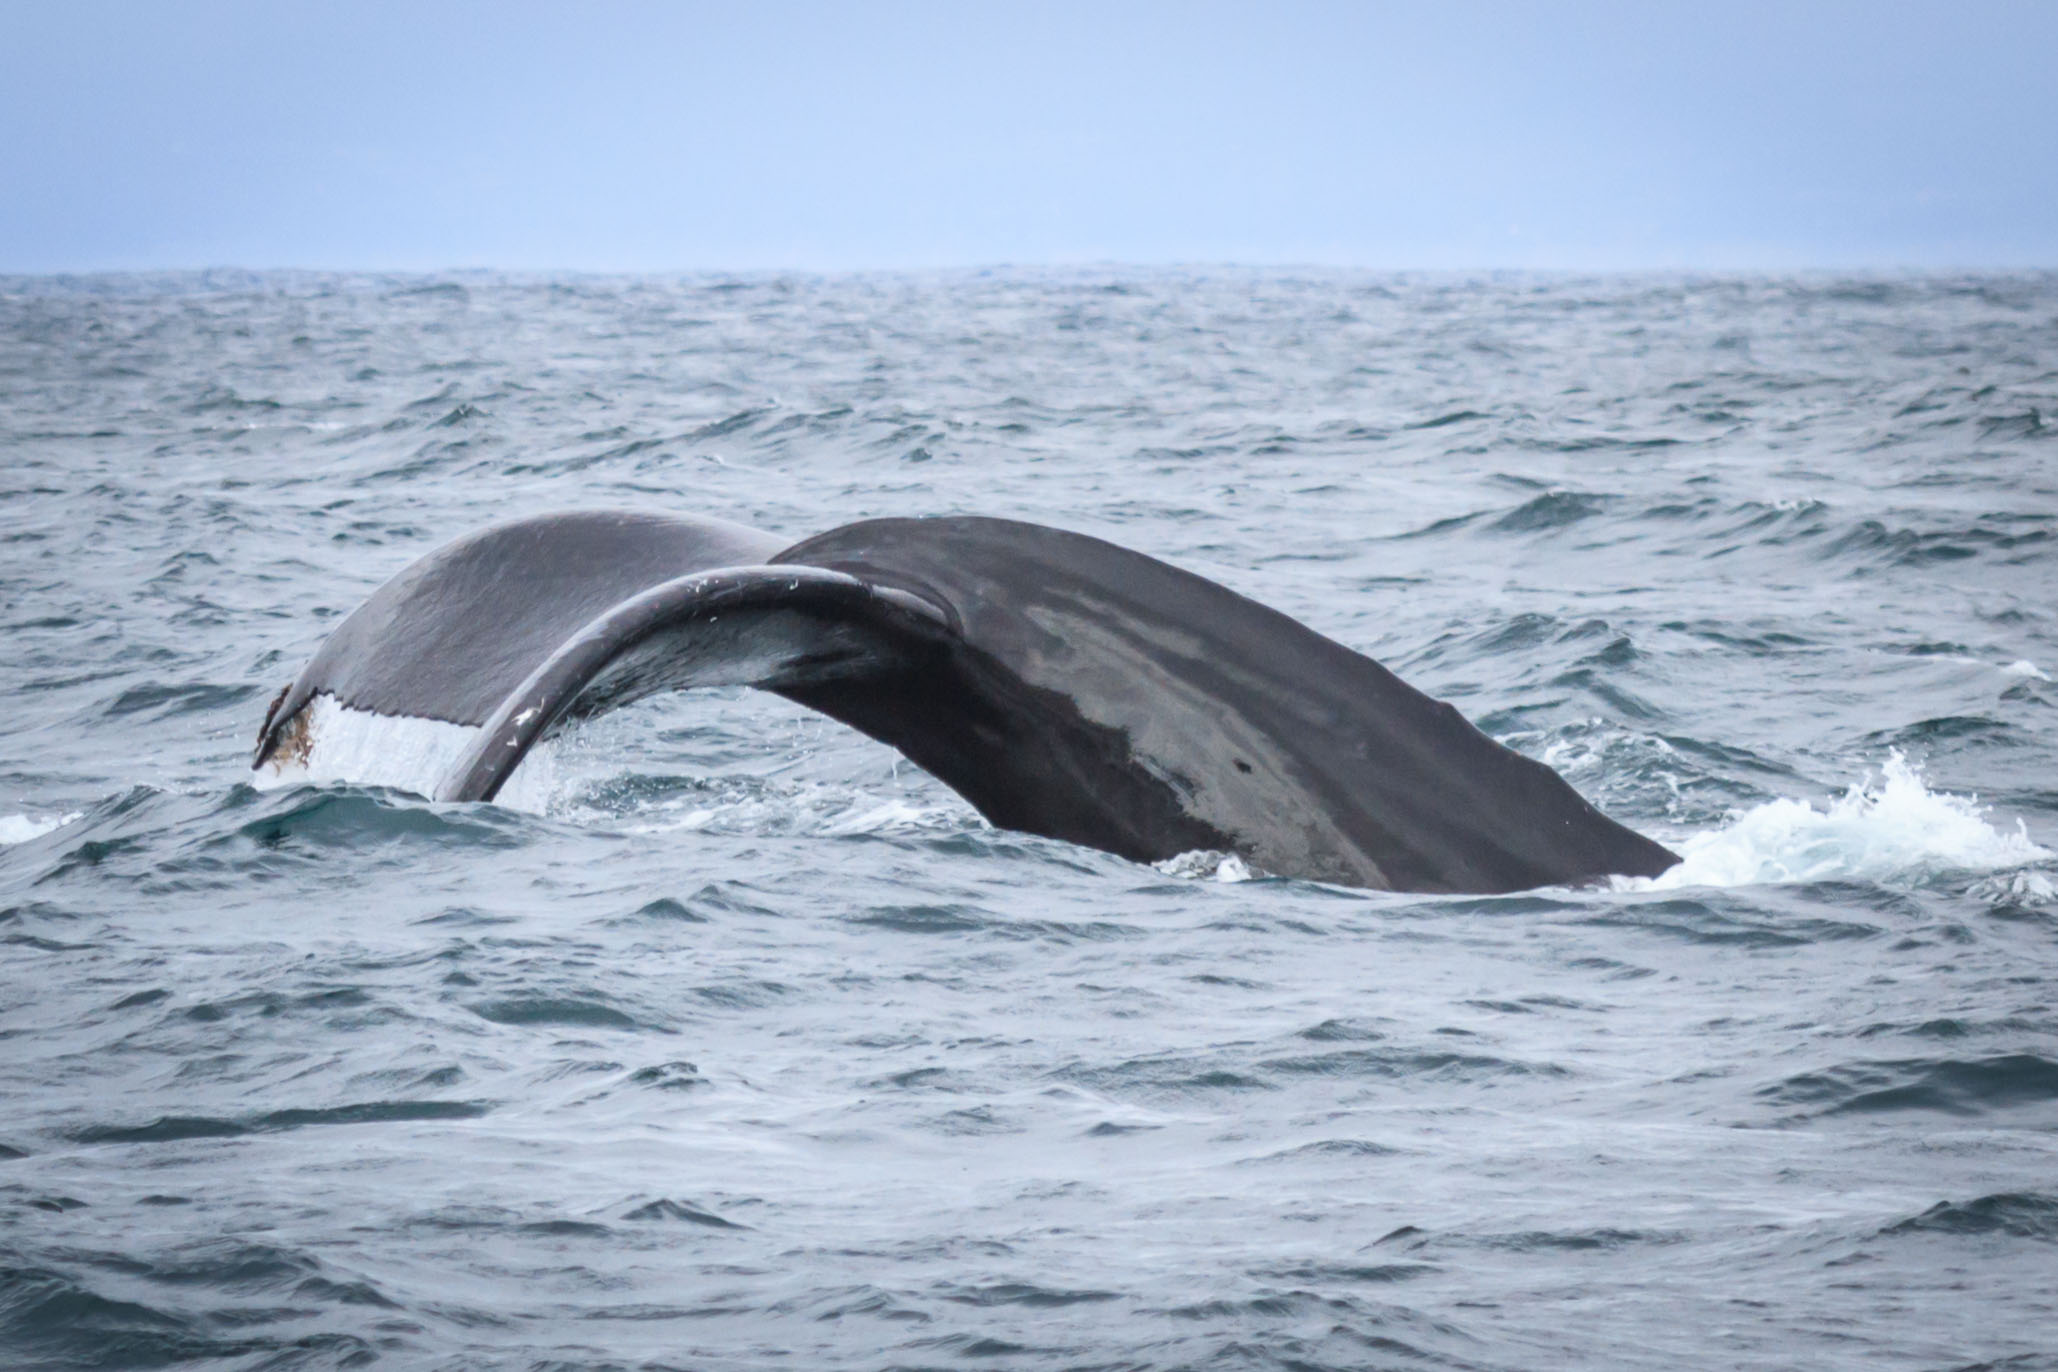 The mighty Humpback whale.